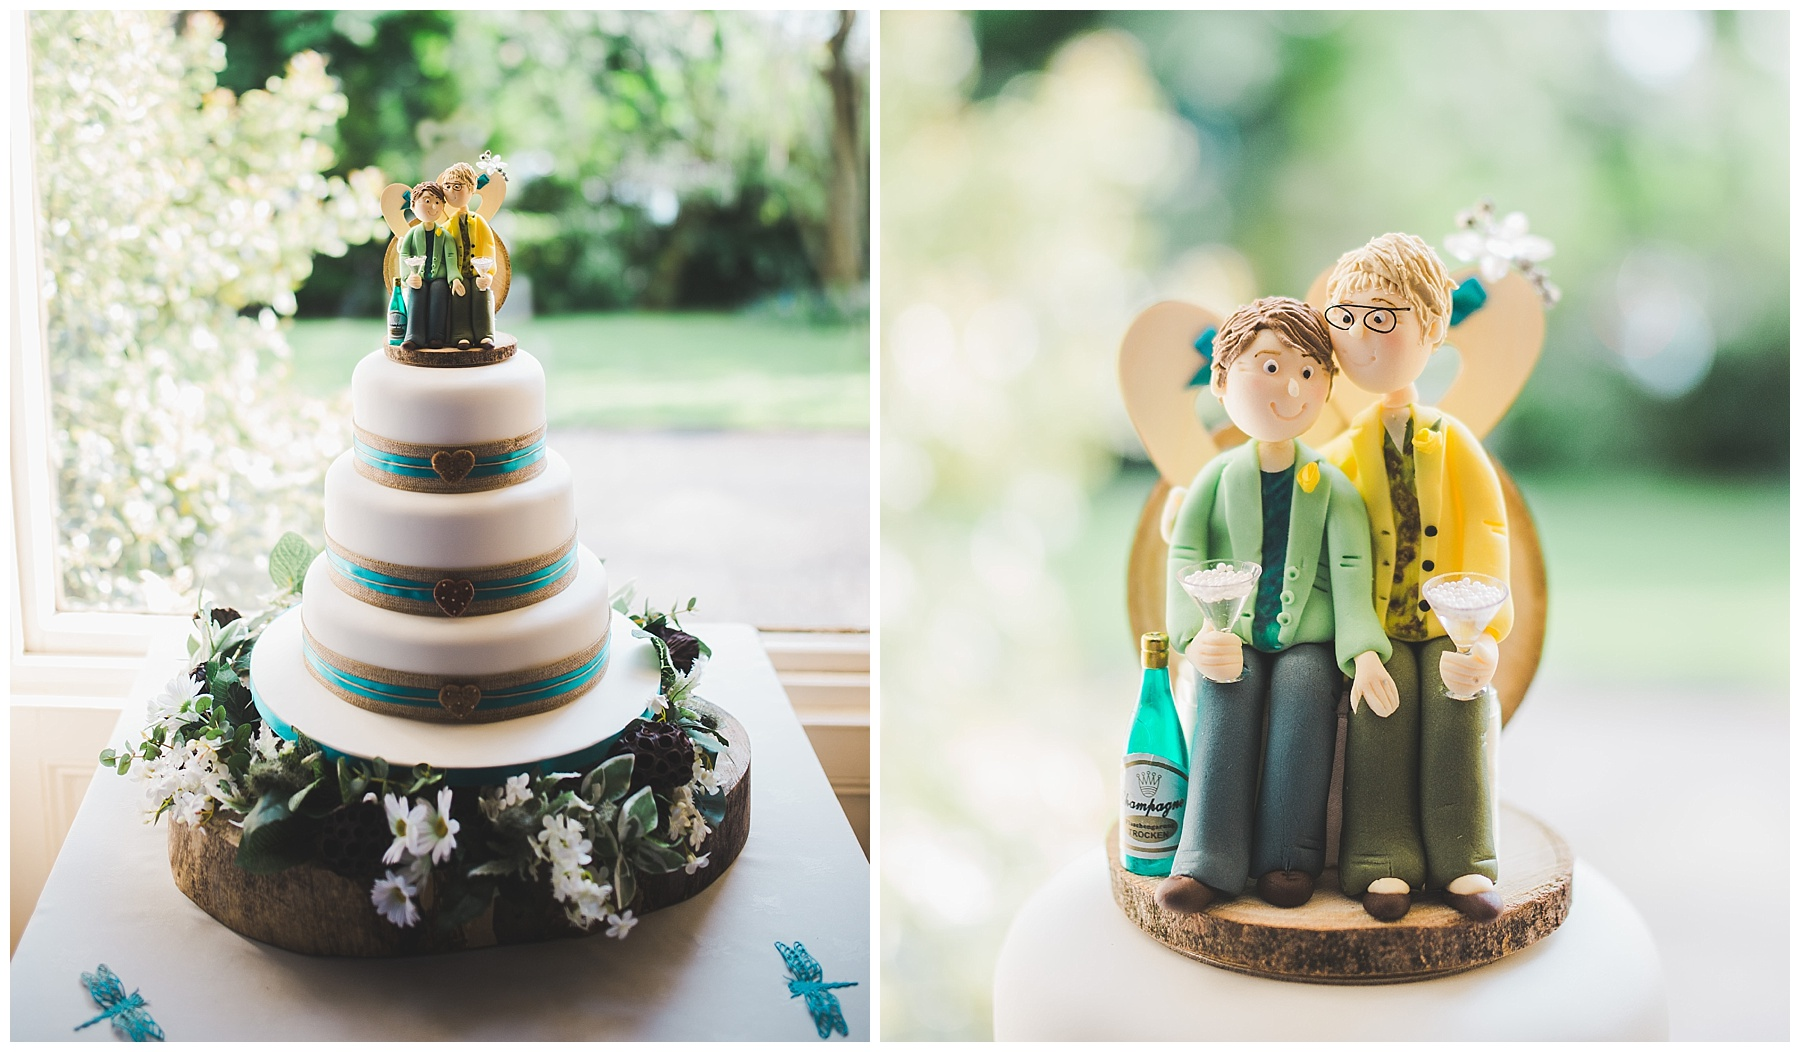 The wedding cake and cake topper.